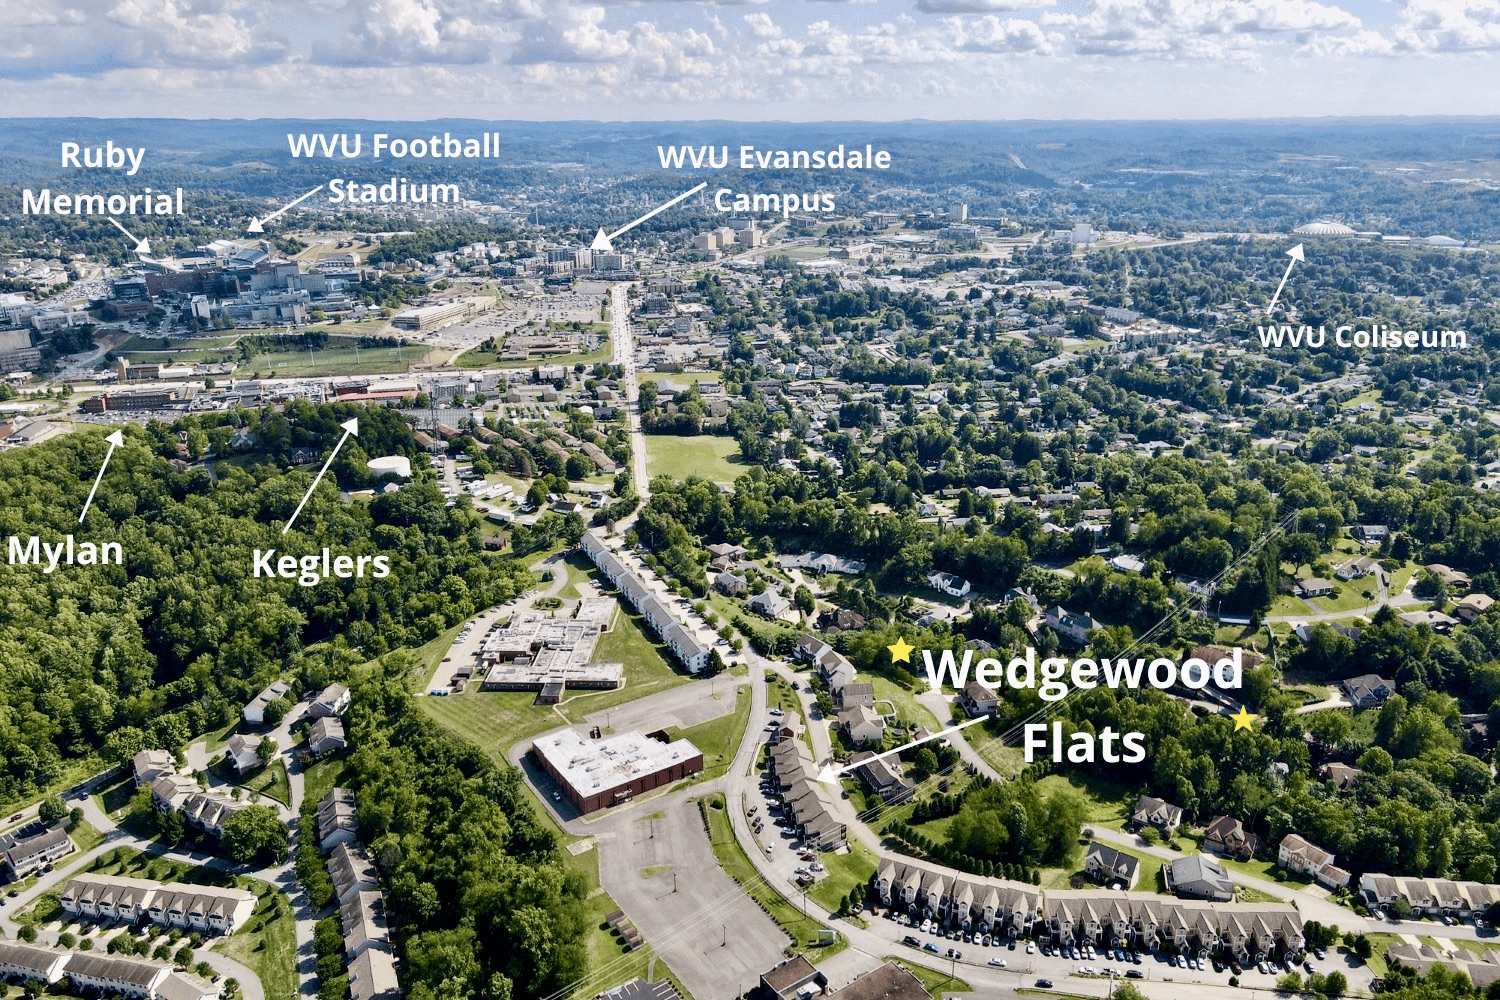 Wedgewood Flats - location photo